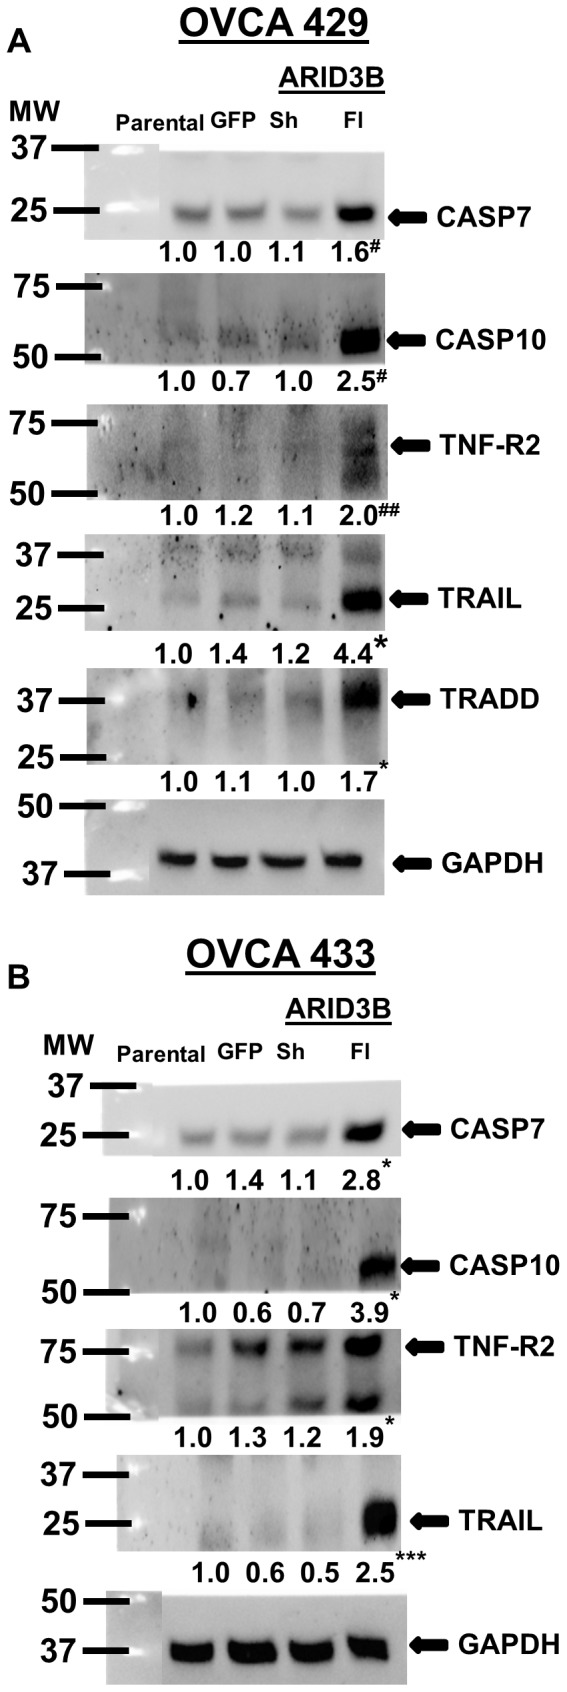 ARID3B Fl induces apoptosis in ovarian carcinoma cells via TNFα/TRAIL pathways. Western blot using anti-Caspase 7, anti-Caspase 10, anti-TNF-R2, anti-TRAIL, anti-TRADD and anti- GAPDH (control) antibodies on transduced OVCA 429 ( A ) and OVCA 433 ( B ) cells. The densitometry evaluations of the western blots were analyzed (value under blot). Results were normalized to GAPDH expression and compared to parental ovarian cancer cells. Statistical analysis was performed to determine if there were any significant changes between parental ovarian cancer cells vs. GFP, ARID3B Sh or ARID3B Fl transduced ovarian cancer cells. [*p